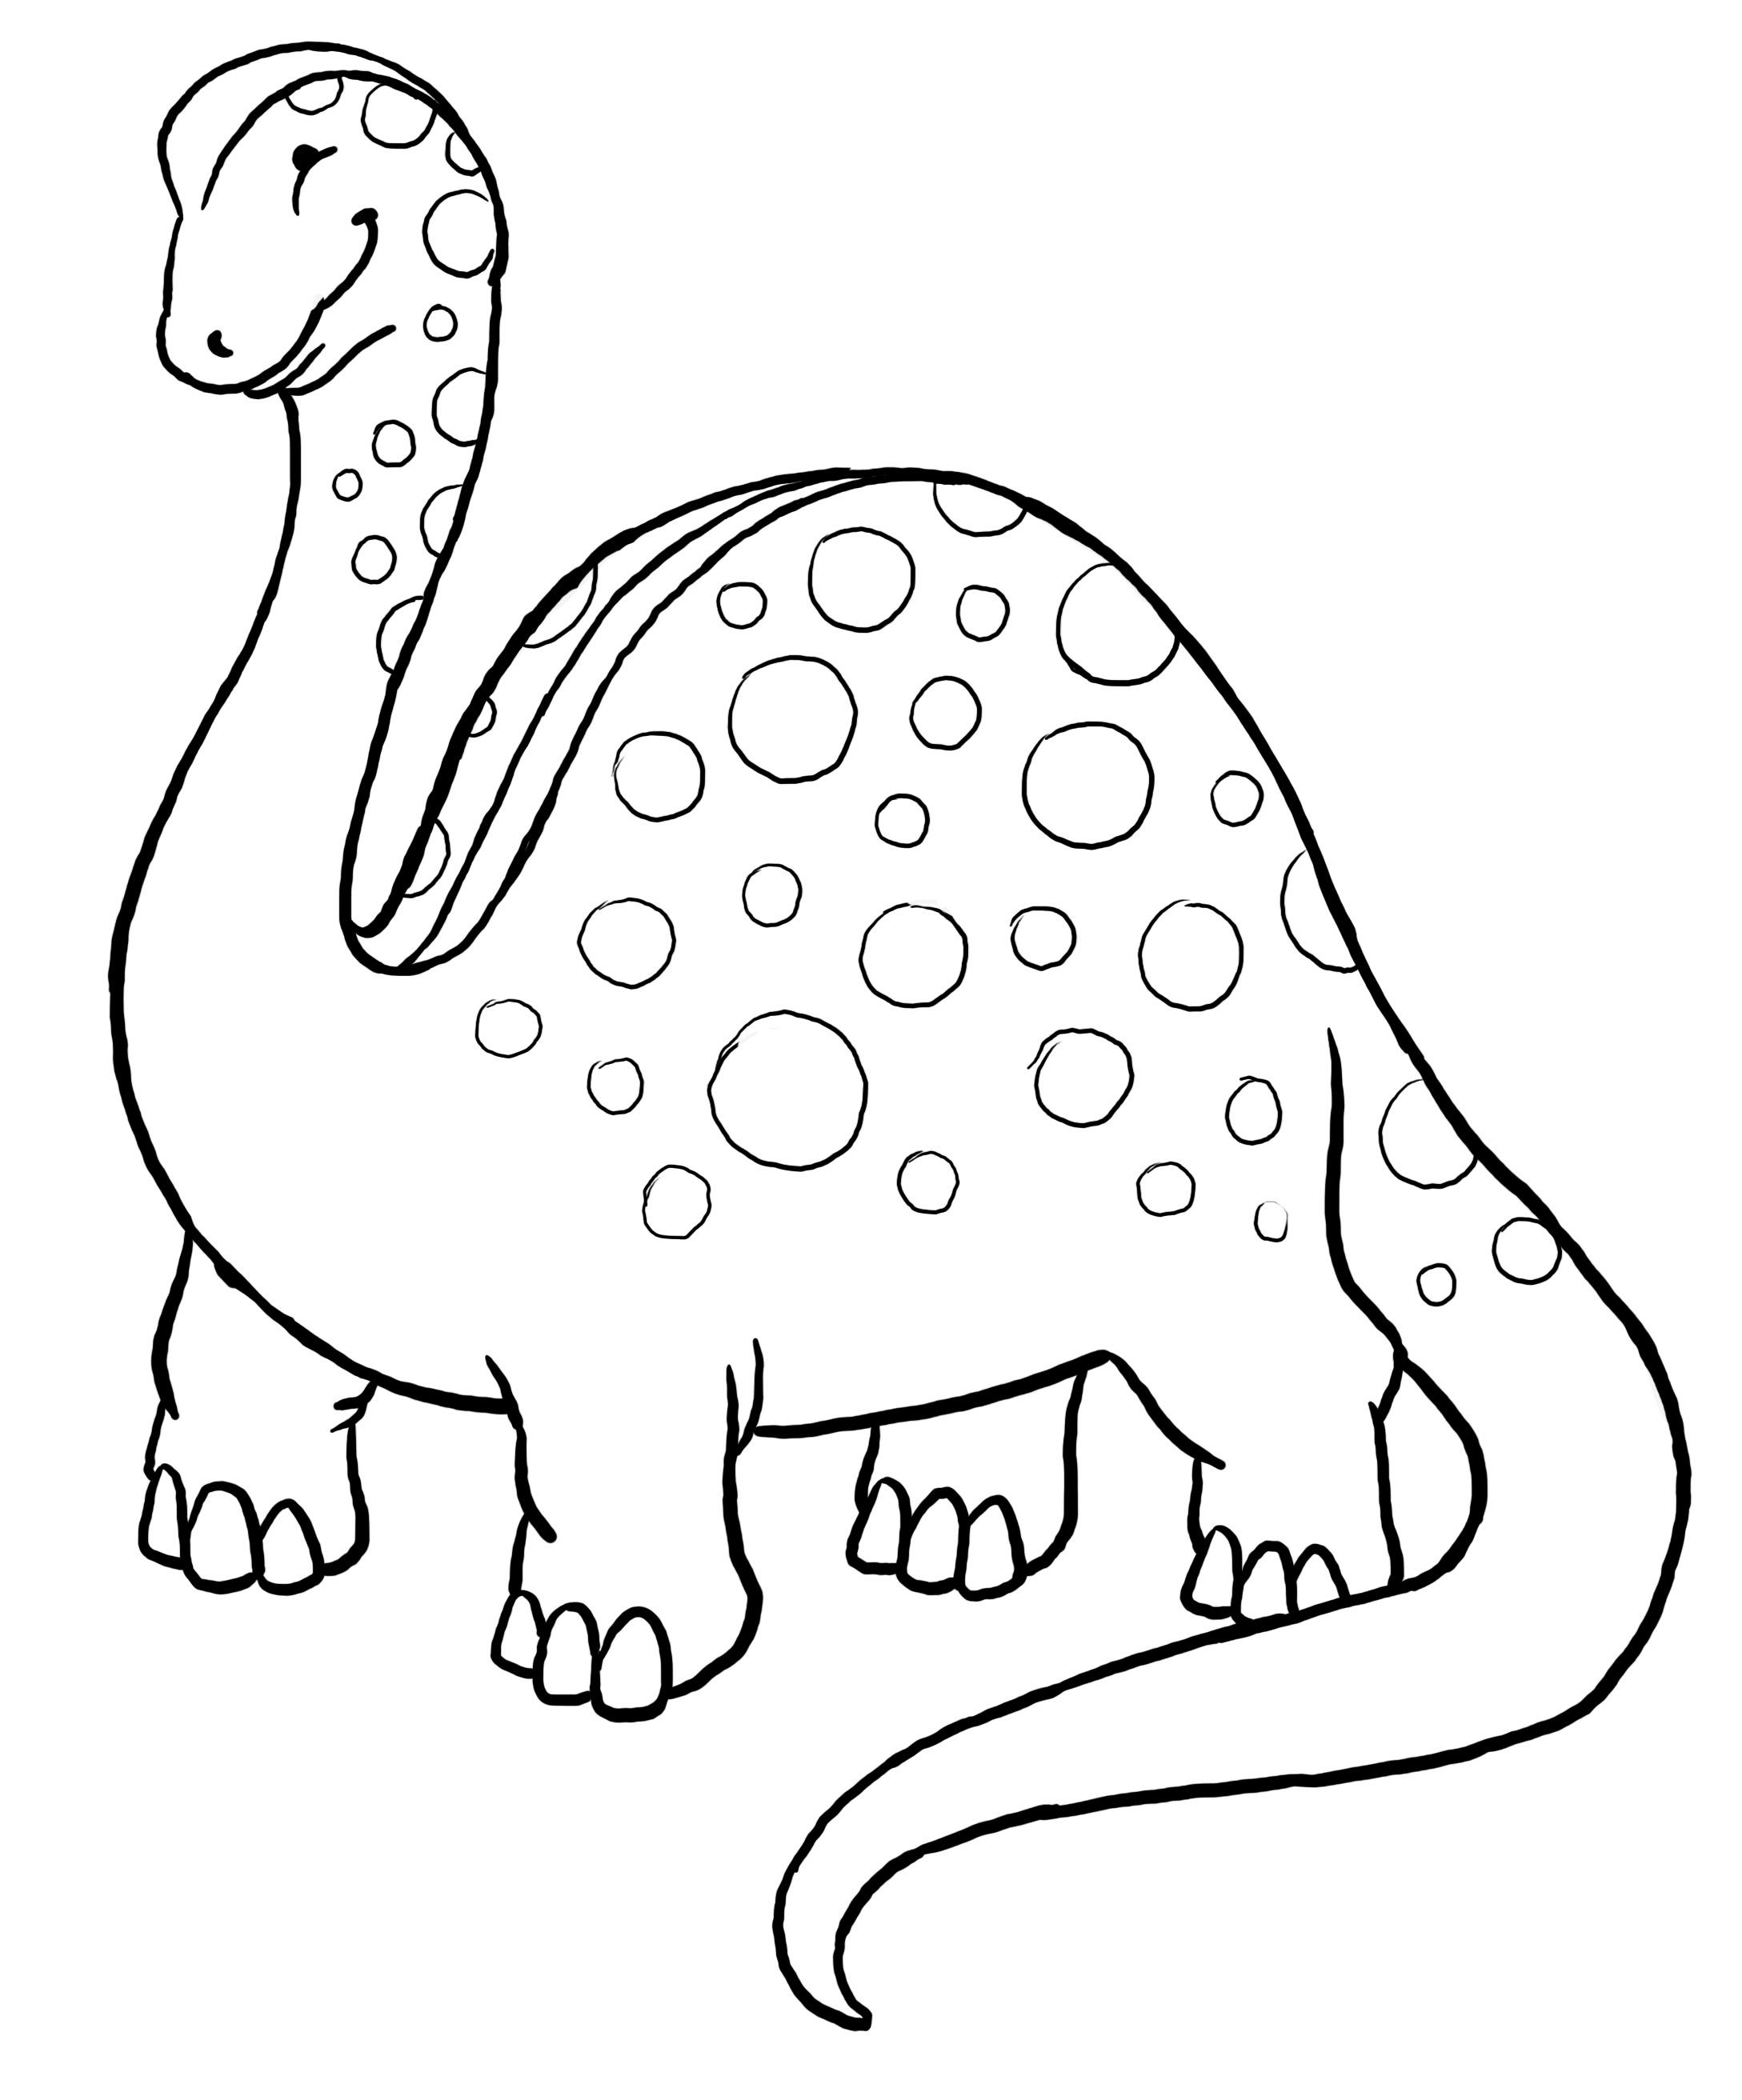 cool dinosaur coloring pages - photo#22